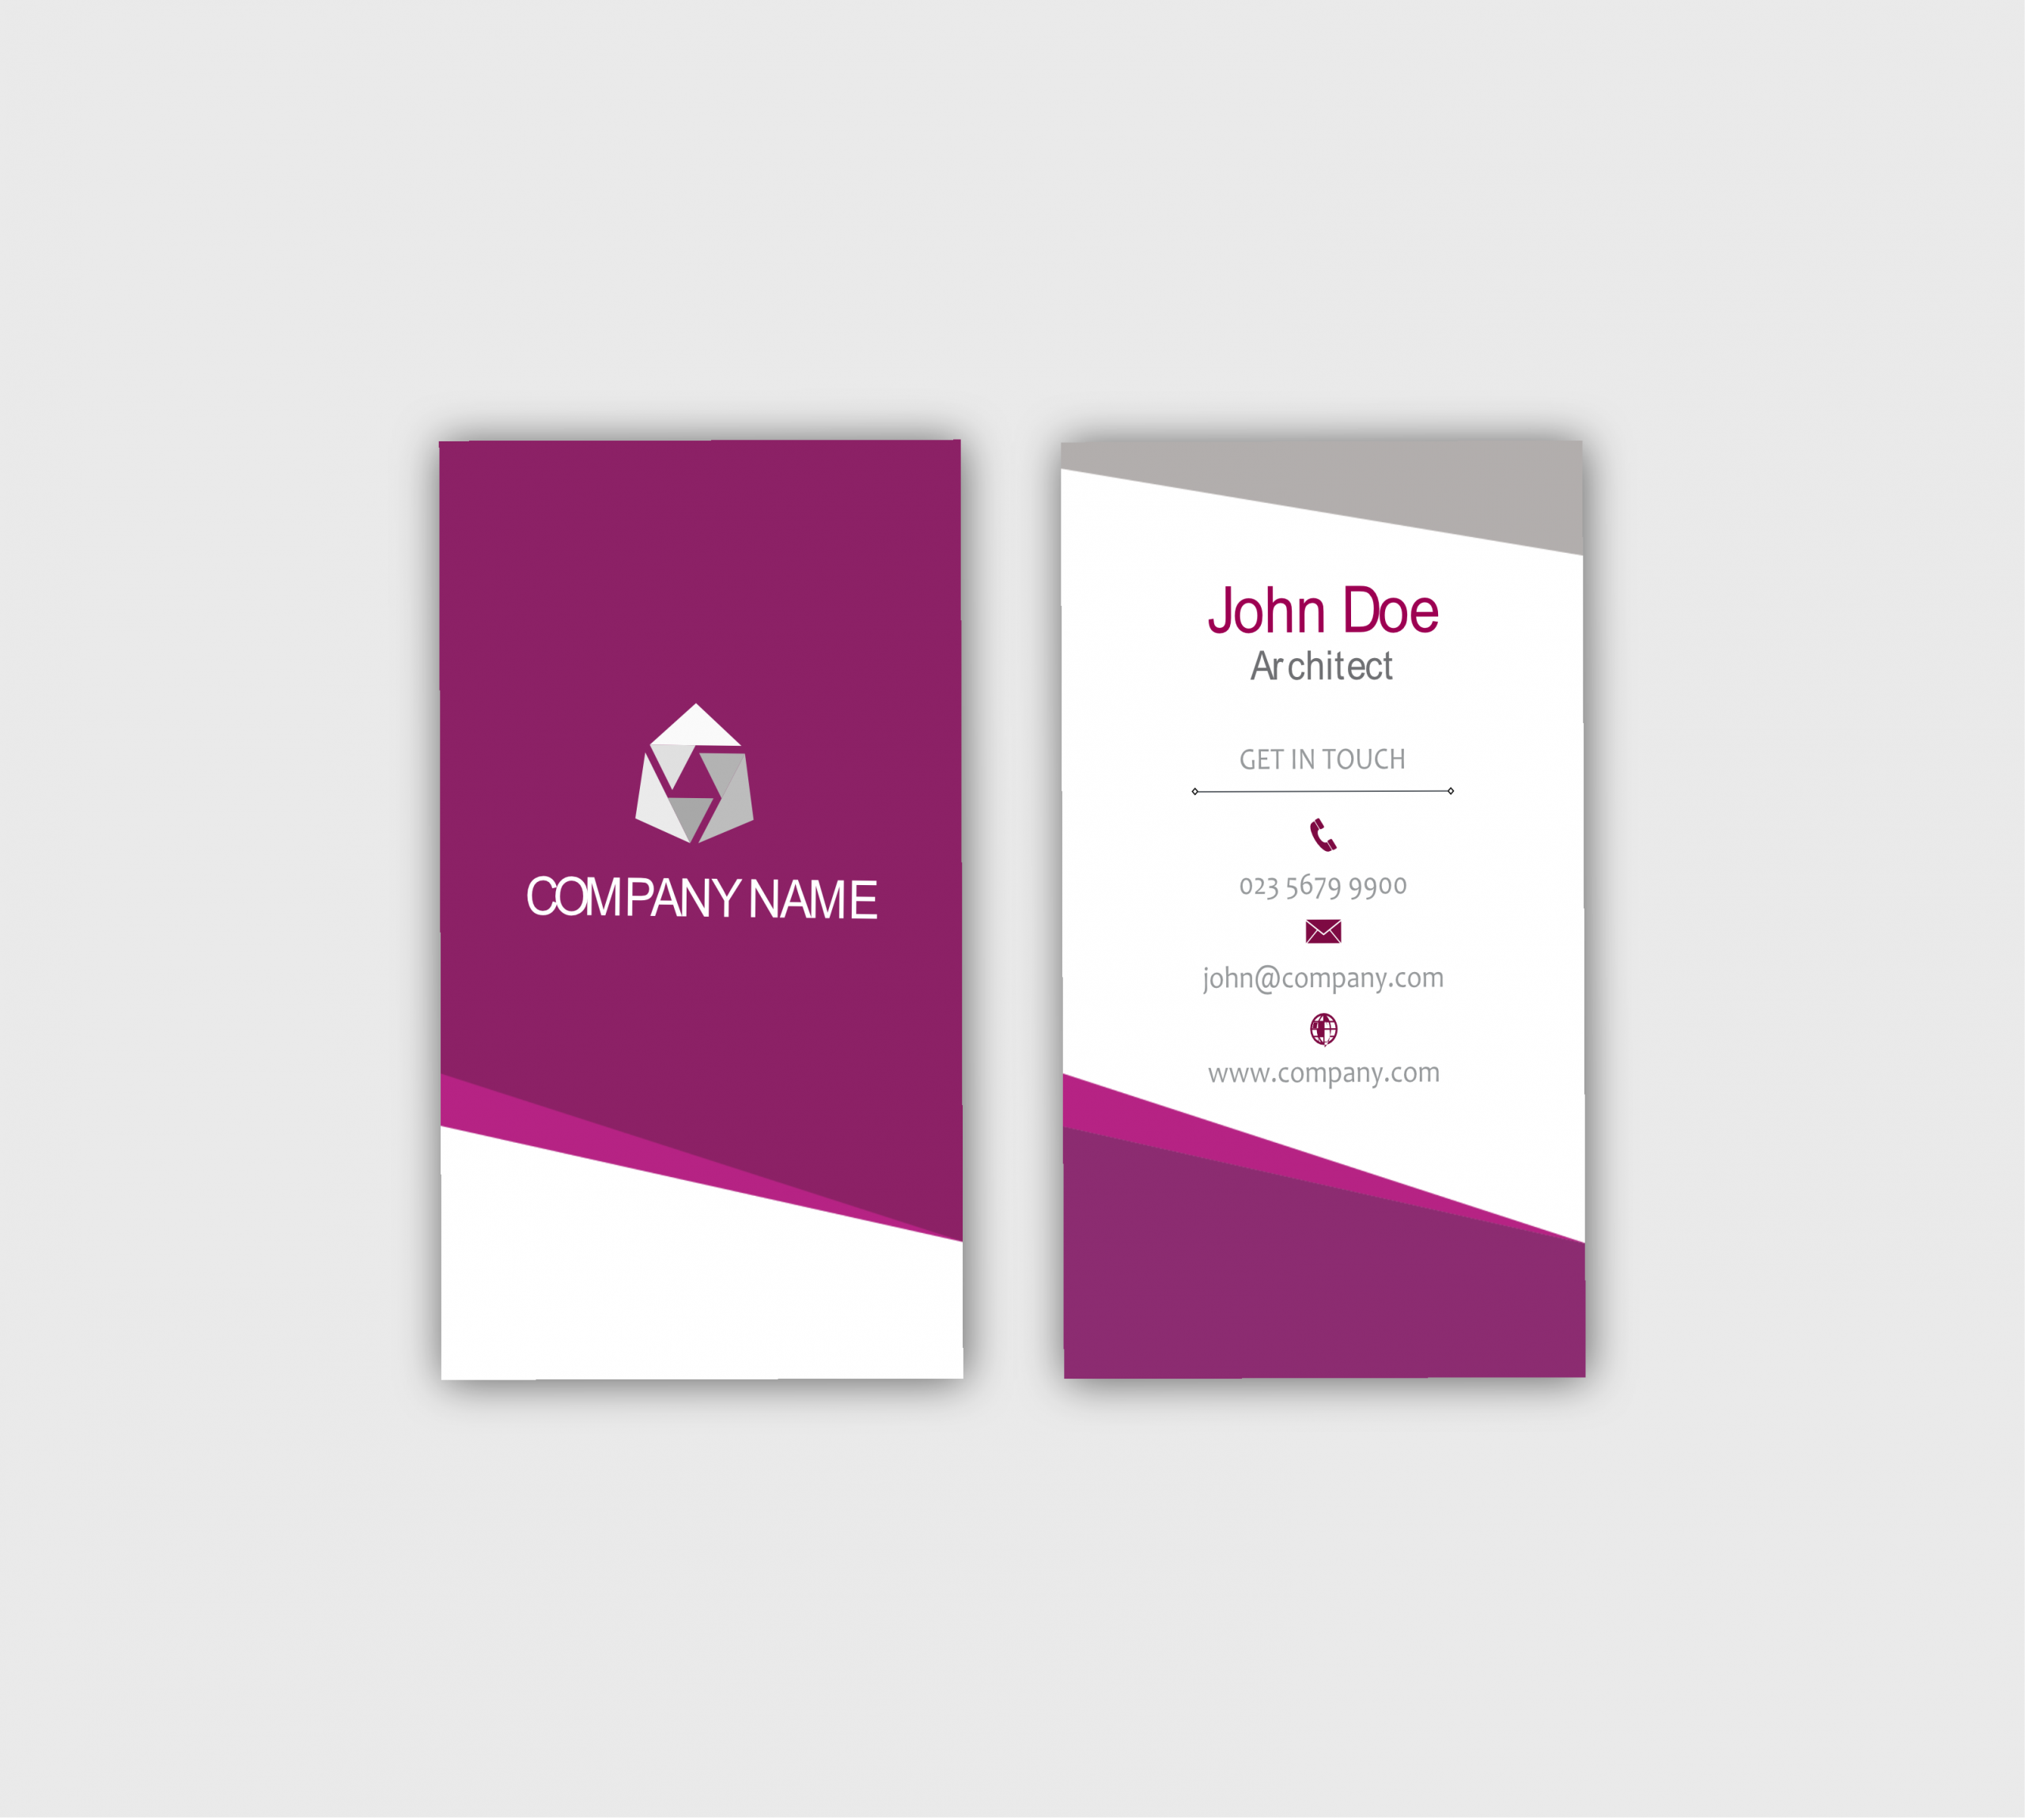 Best value business cards cleverprint click to enlarge previous product artboard5 best value business cards reheart Gallery